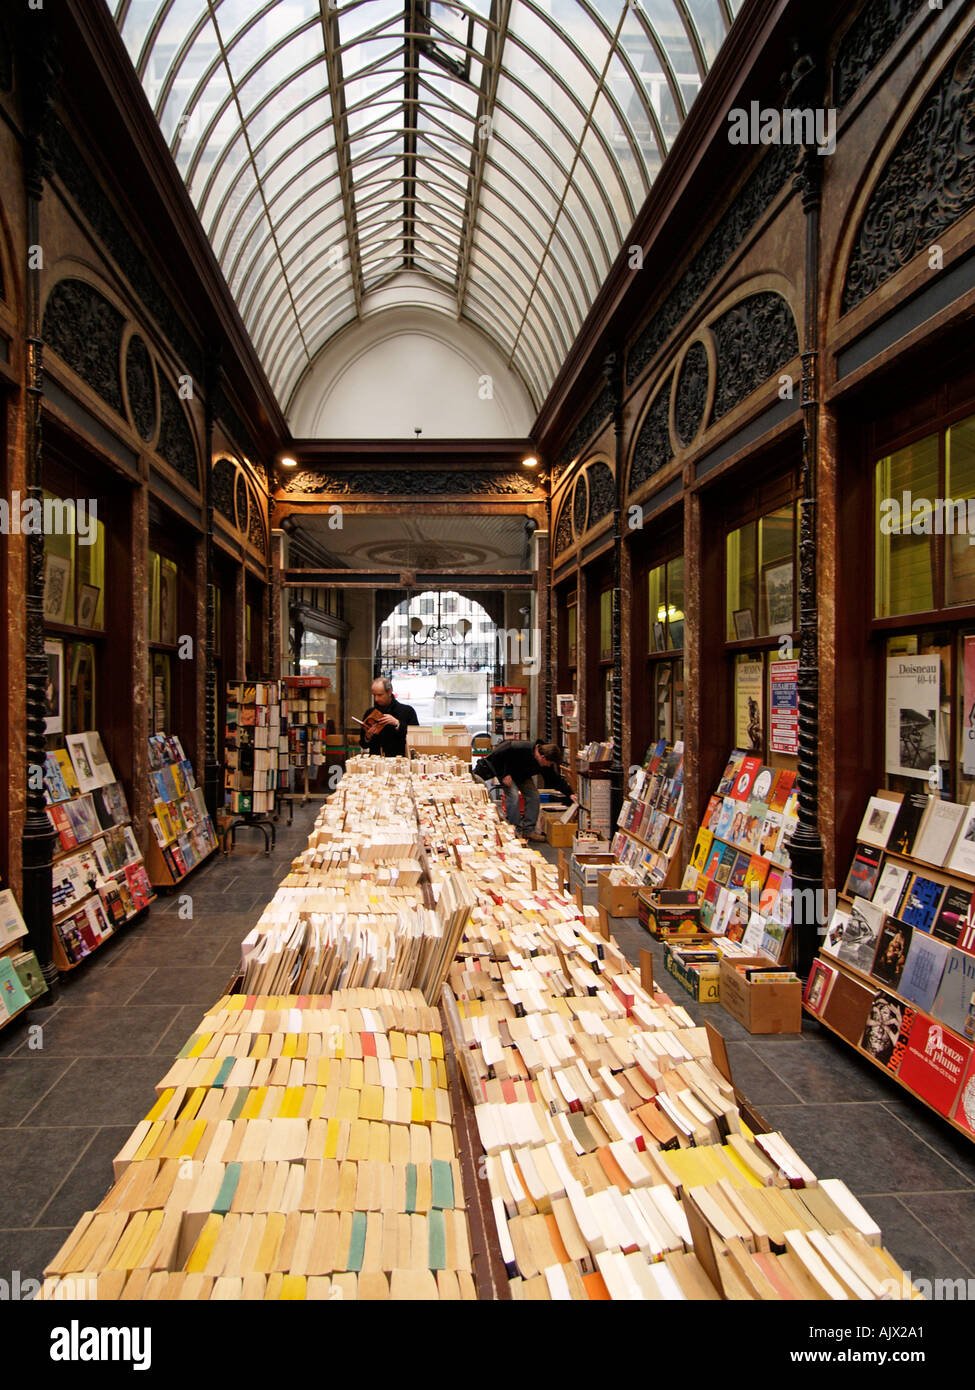 Art deco bookstalls and antique bookshop arcade in brussels belgium stock pho - Deco vintage belgique ...